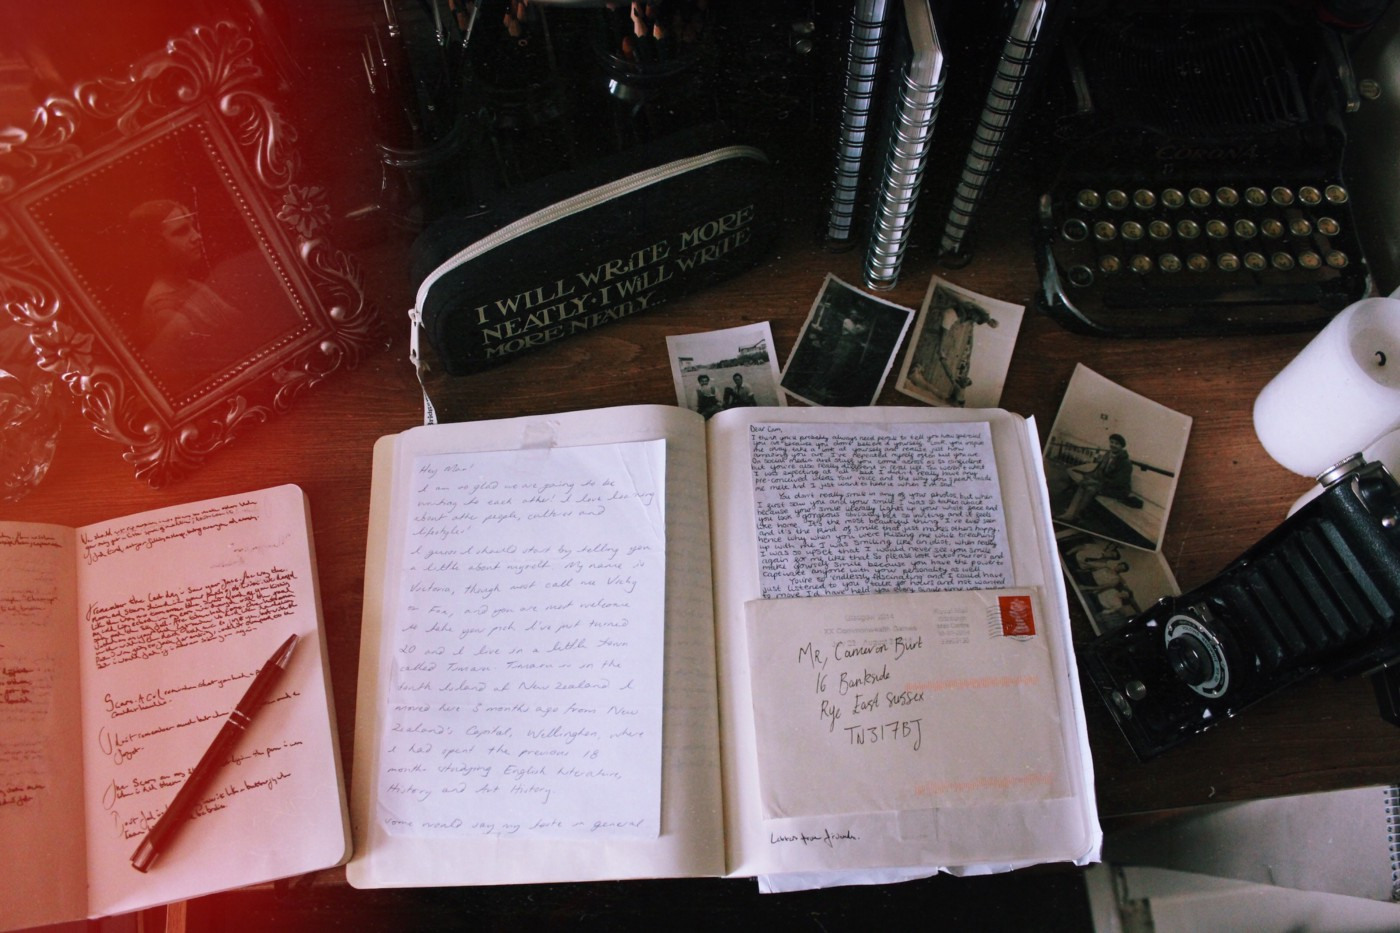 A desk with 2 notebooks, a framed photo, a typewriter, and a pencil bag. The photo has some light leak and looks vintage.